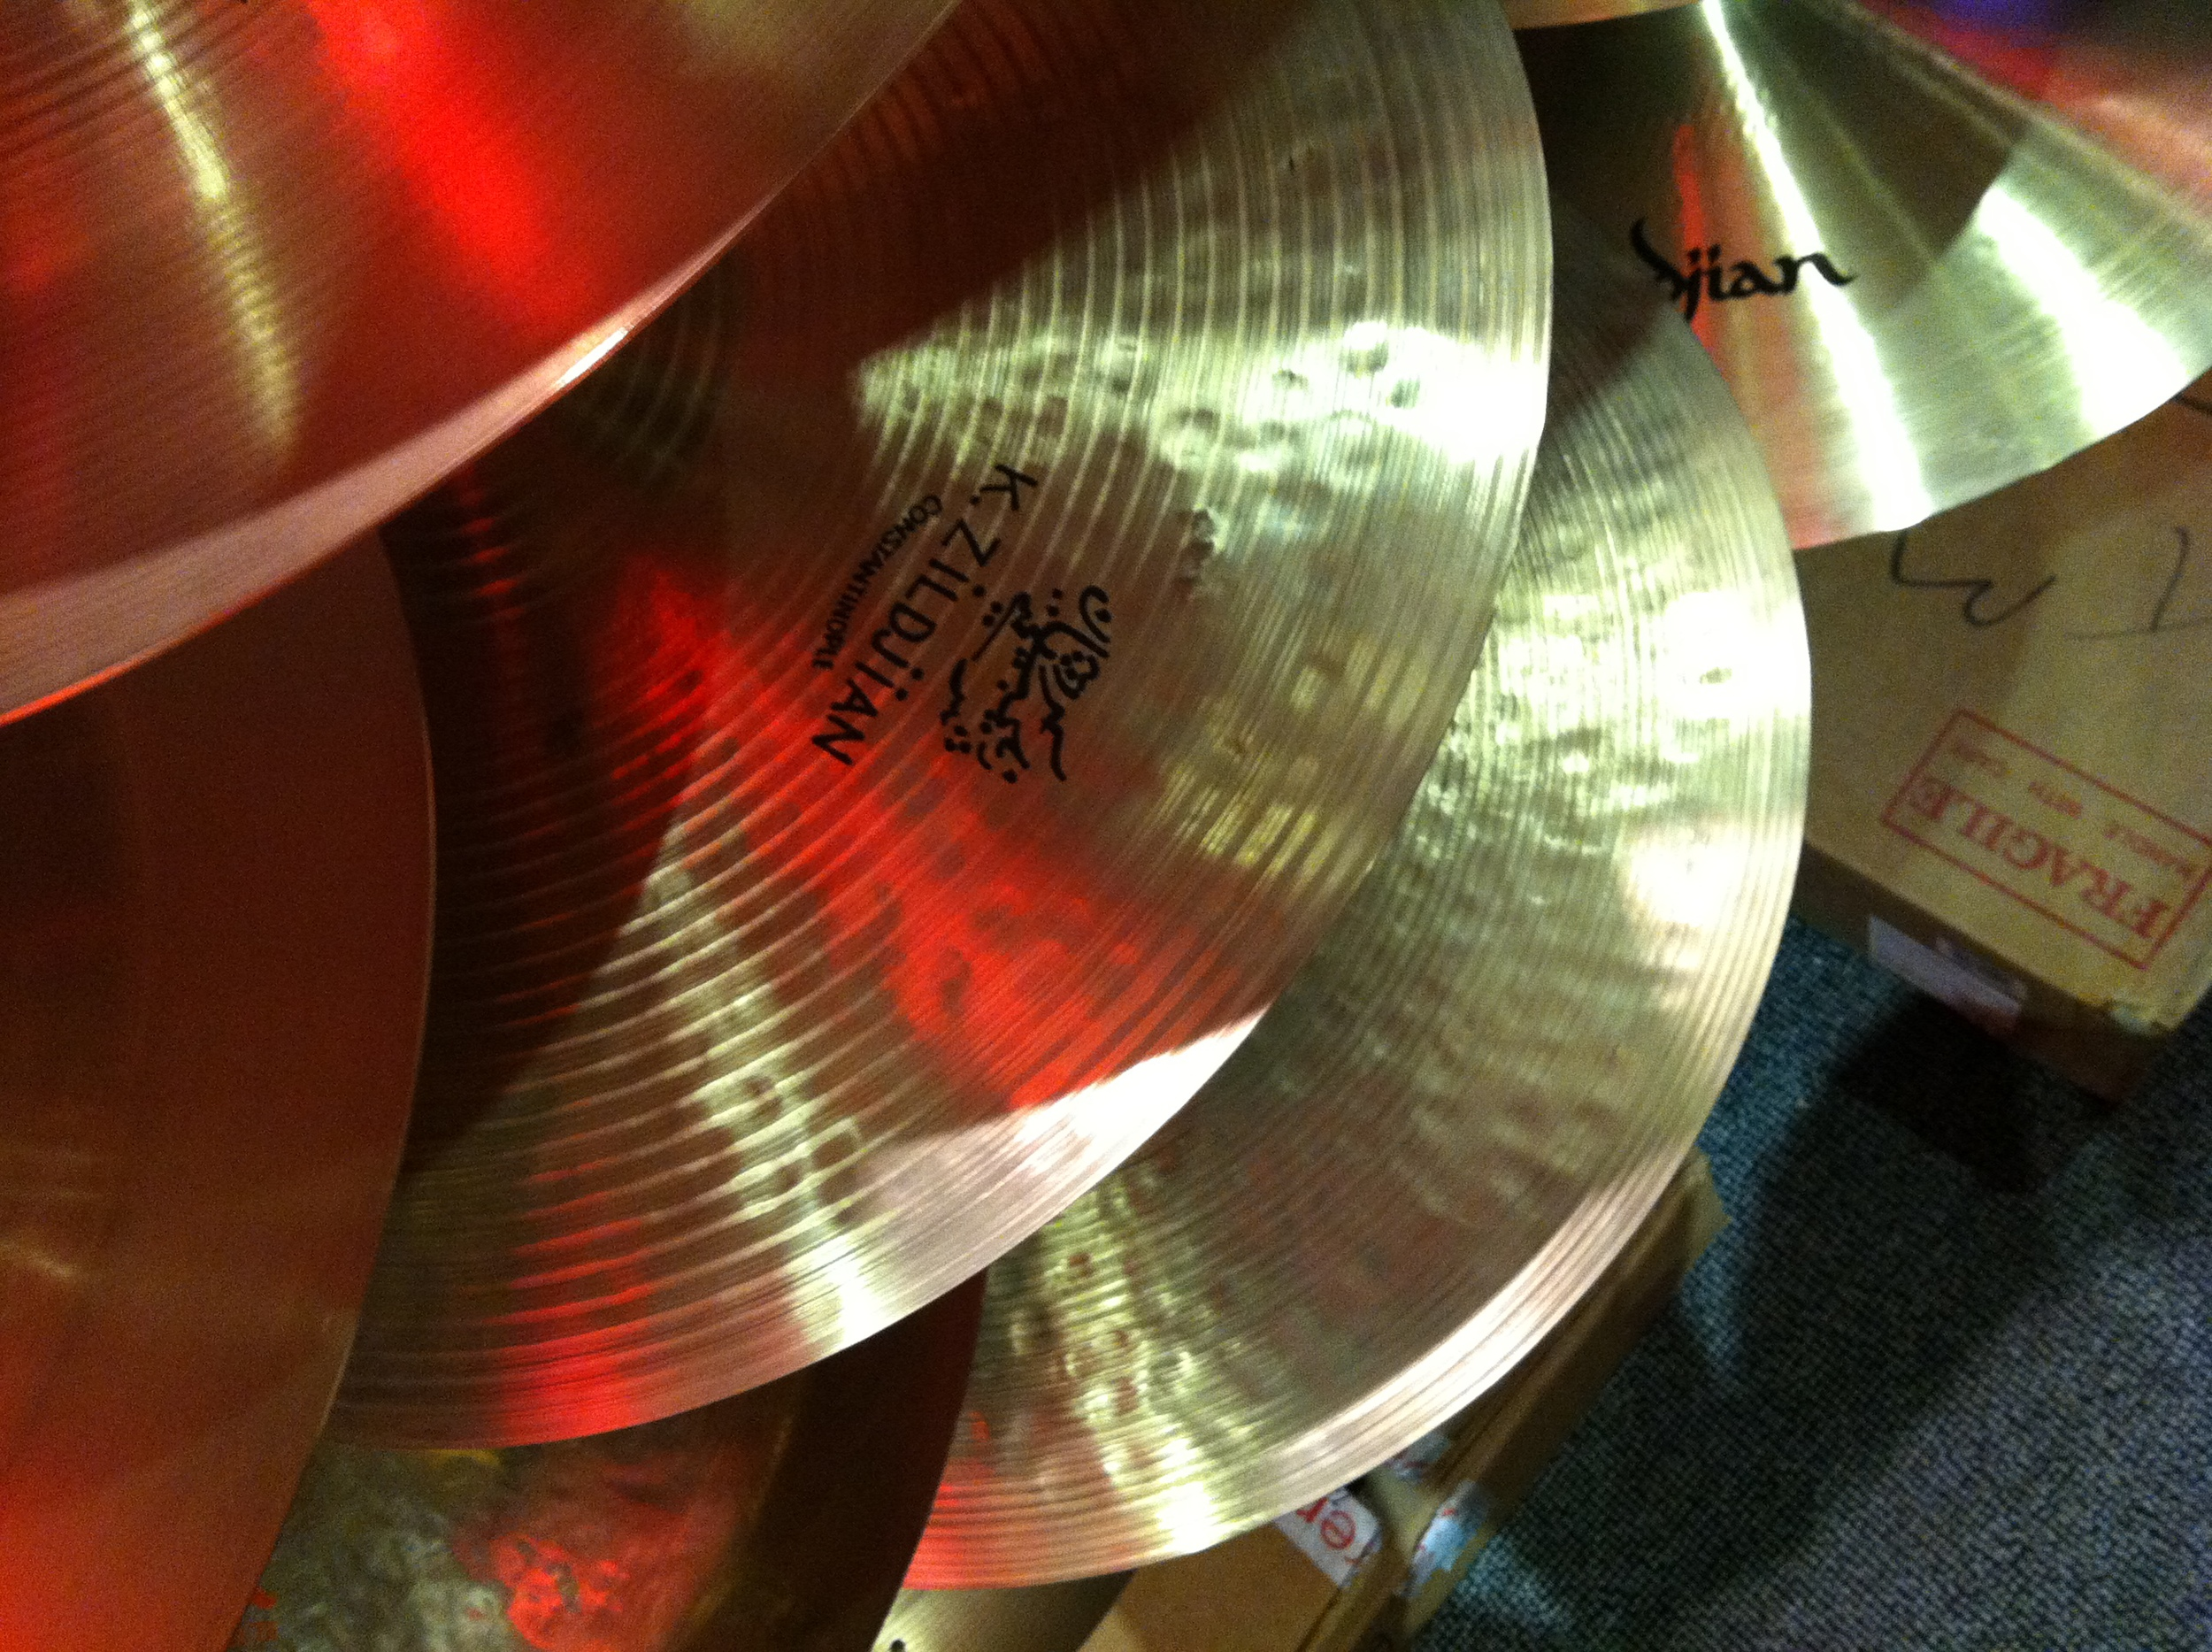 Reproductions of the legendary Constantinople from Zildjian are still available with a stamped instead of engraved brand mark.